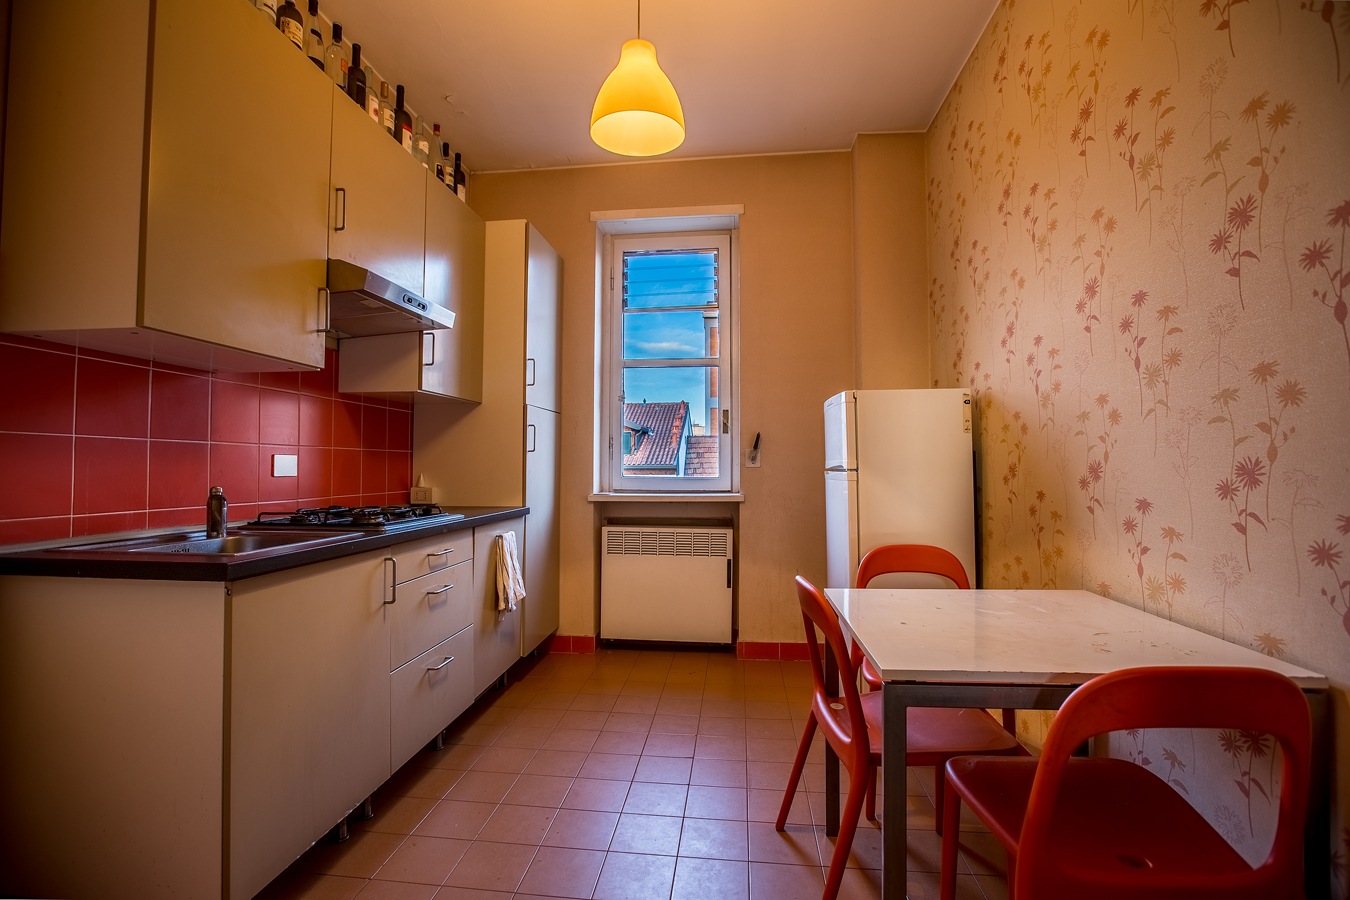 Student Apartment for rent in Via Melzo, 7, 5° floor, in Milano, Italy